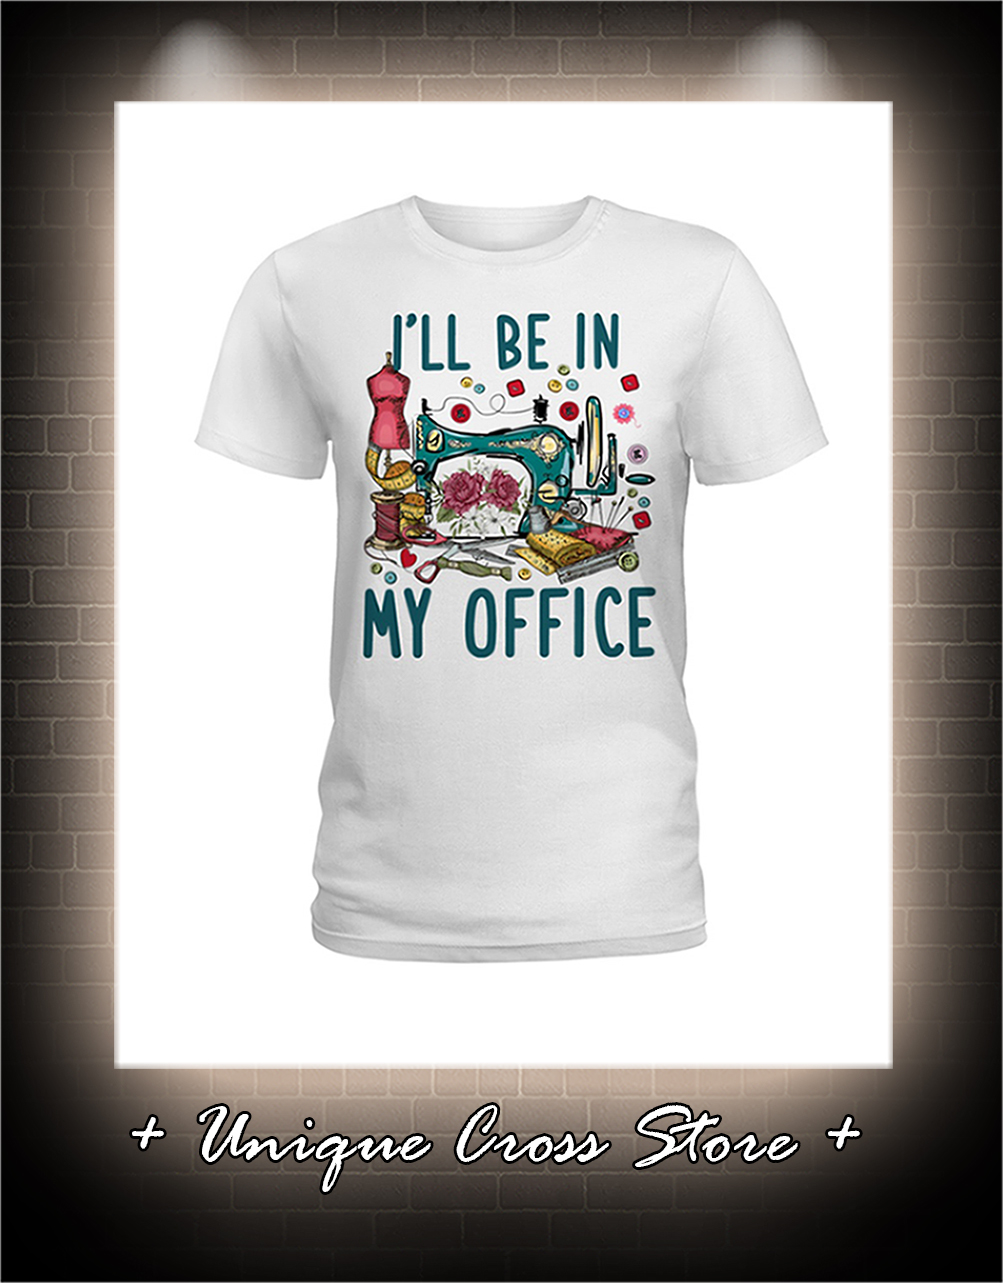 Sewing I'll be in my office lady shirt